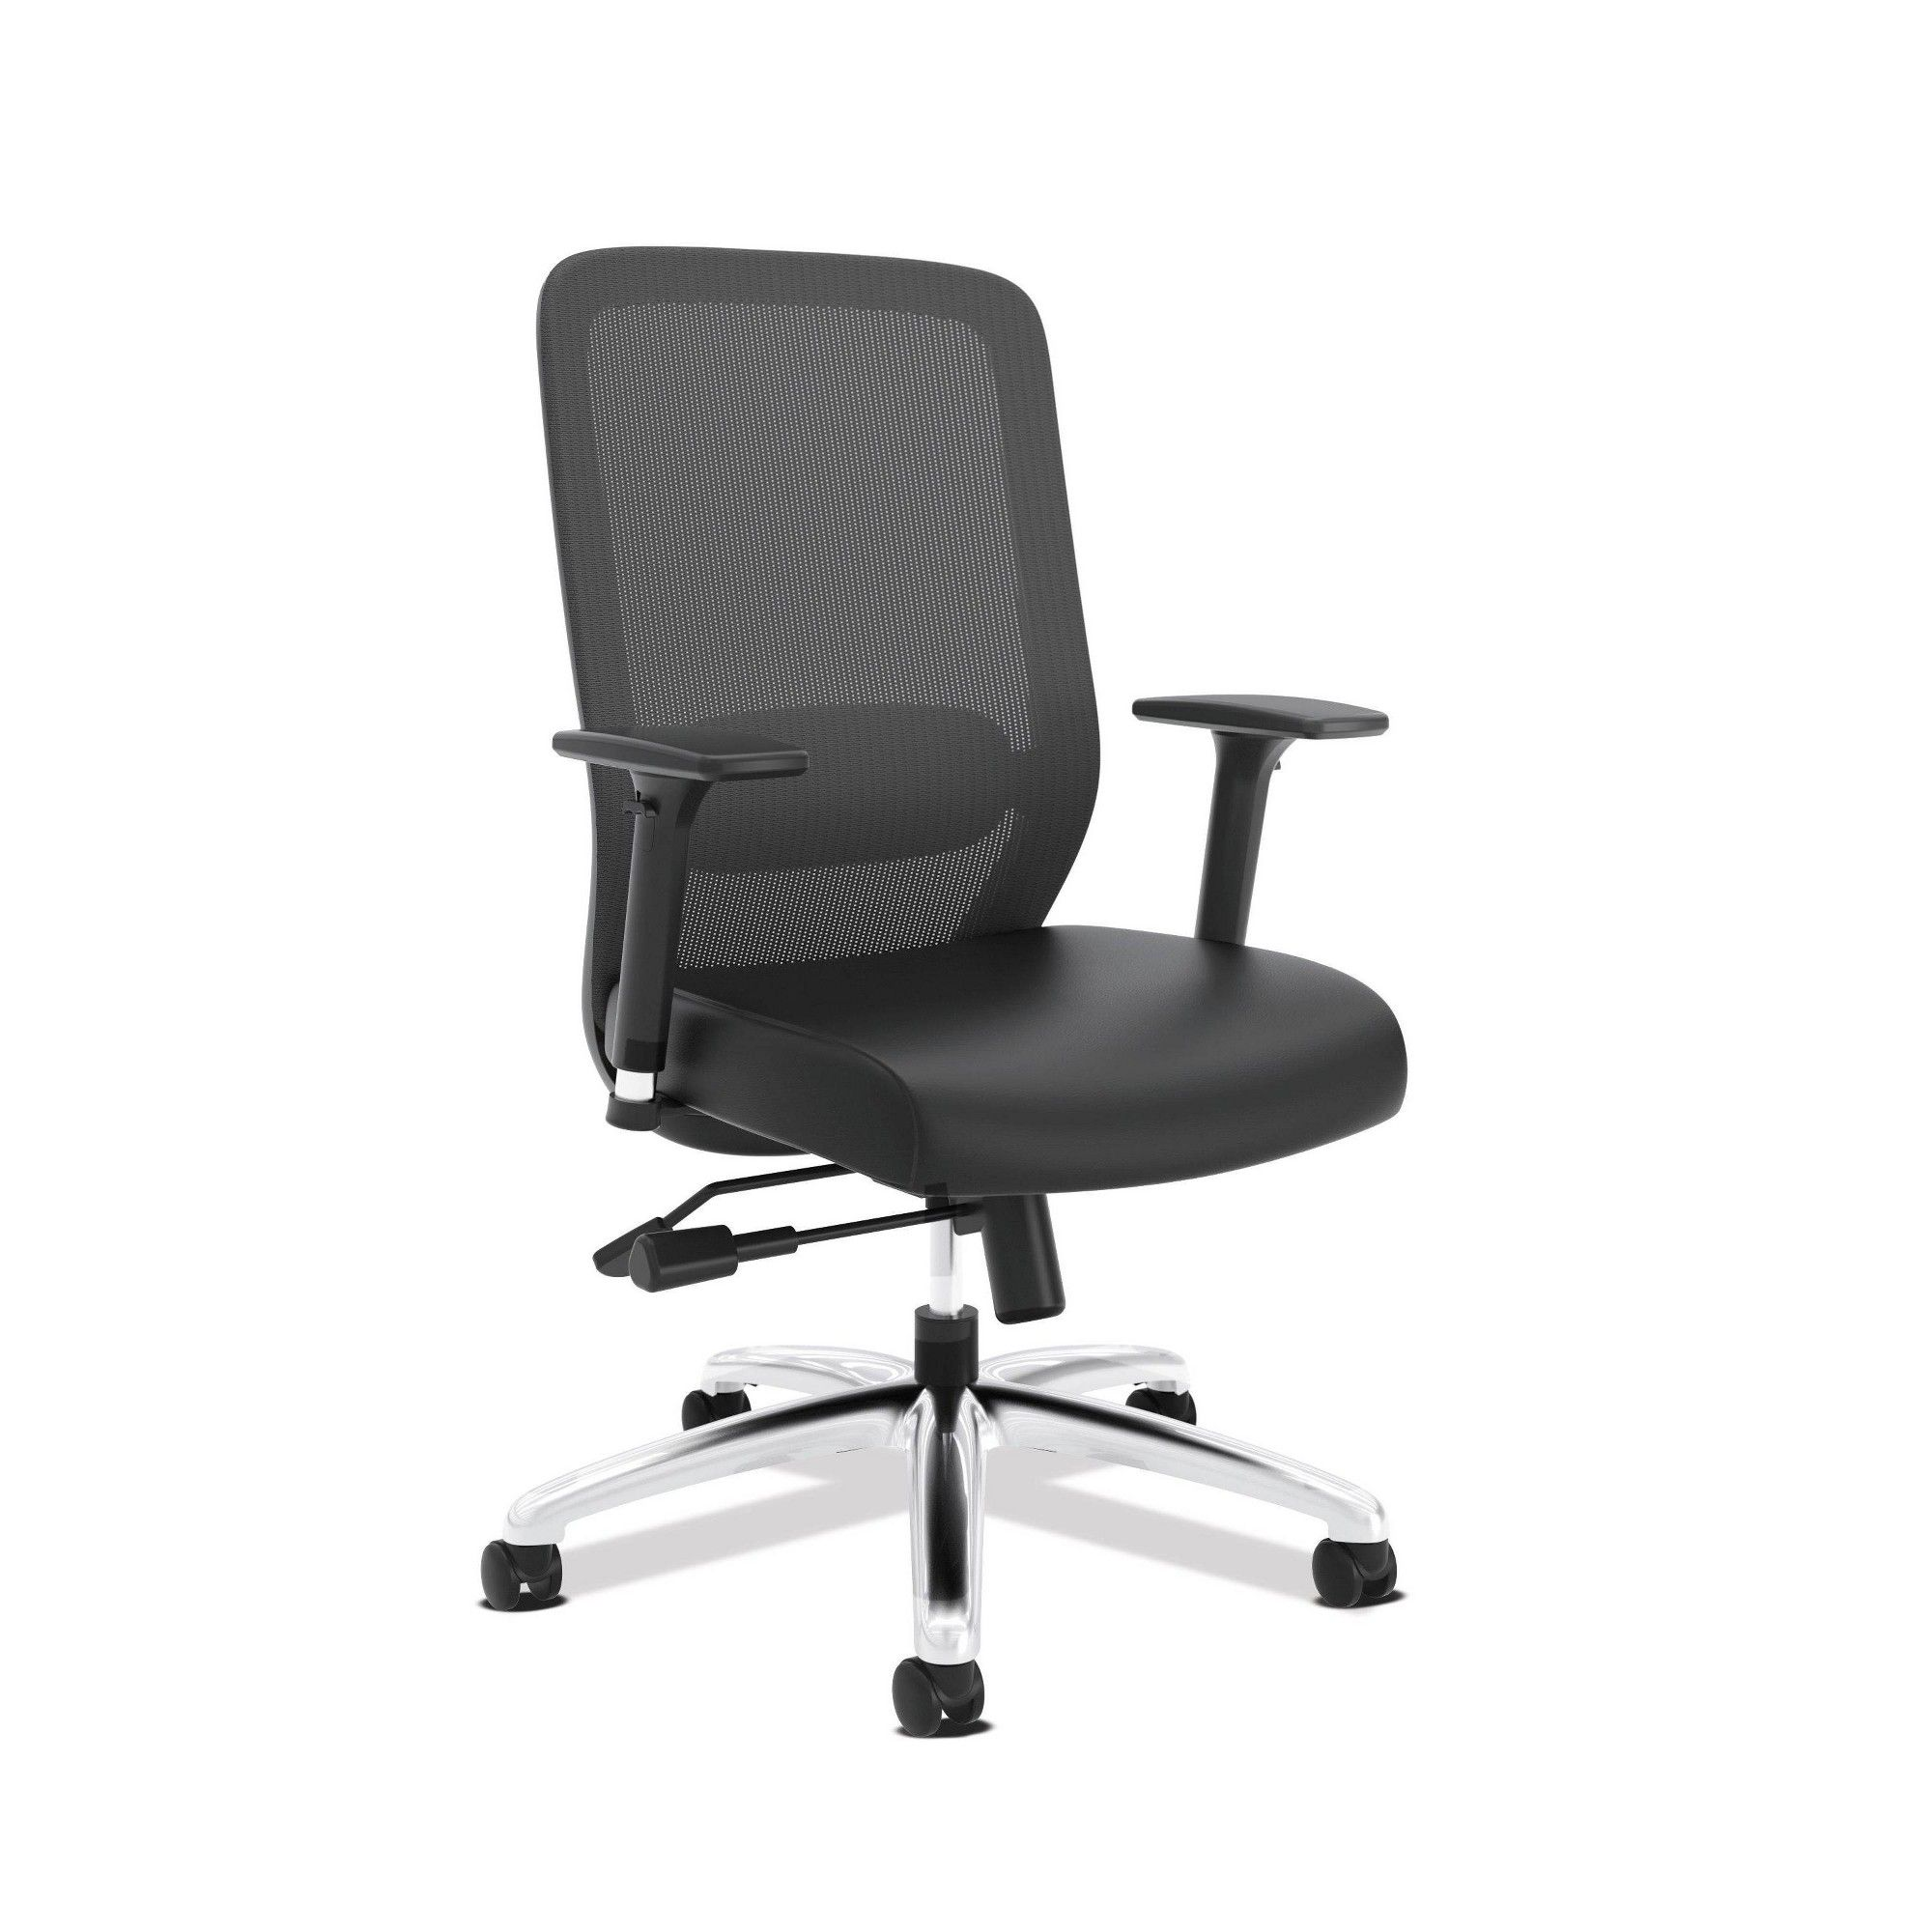 Exposure Mesh High Back Computer Chair With Leather Seat Black